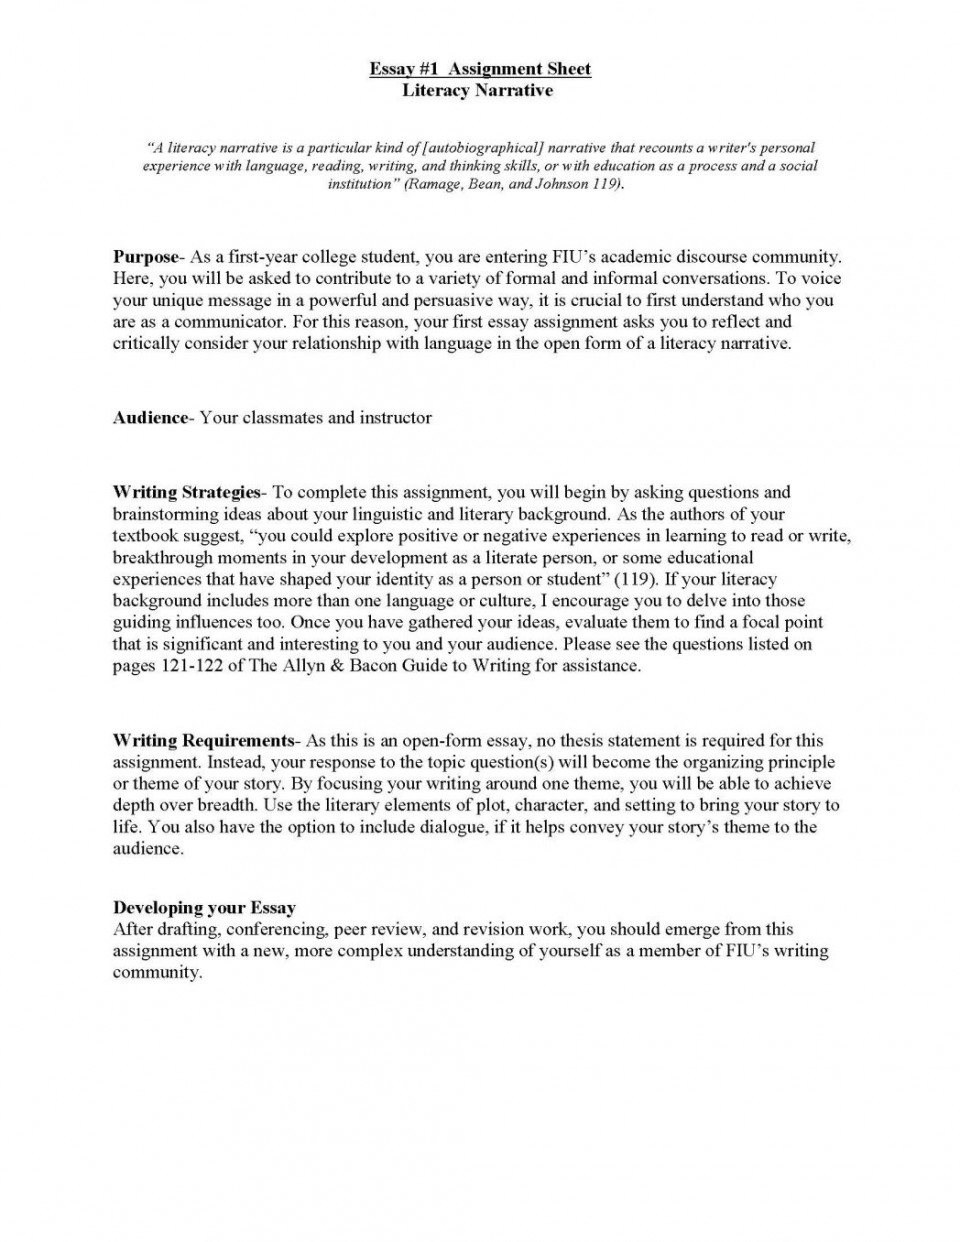 010 Thesis Statement For Narrative Essayes Of Outline Good Descriptive Topics Literacy Unit Assignment Spring 2012 P Personale 1048x1356 Staggering Essay The A Should Be Created During Generator Example 960